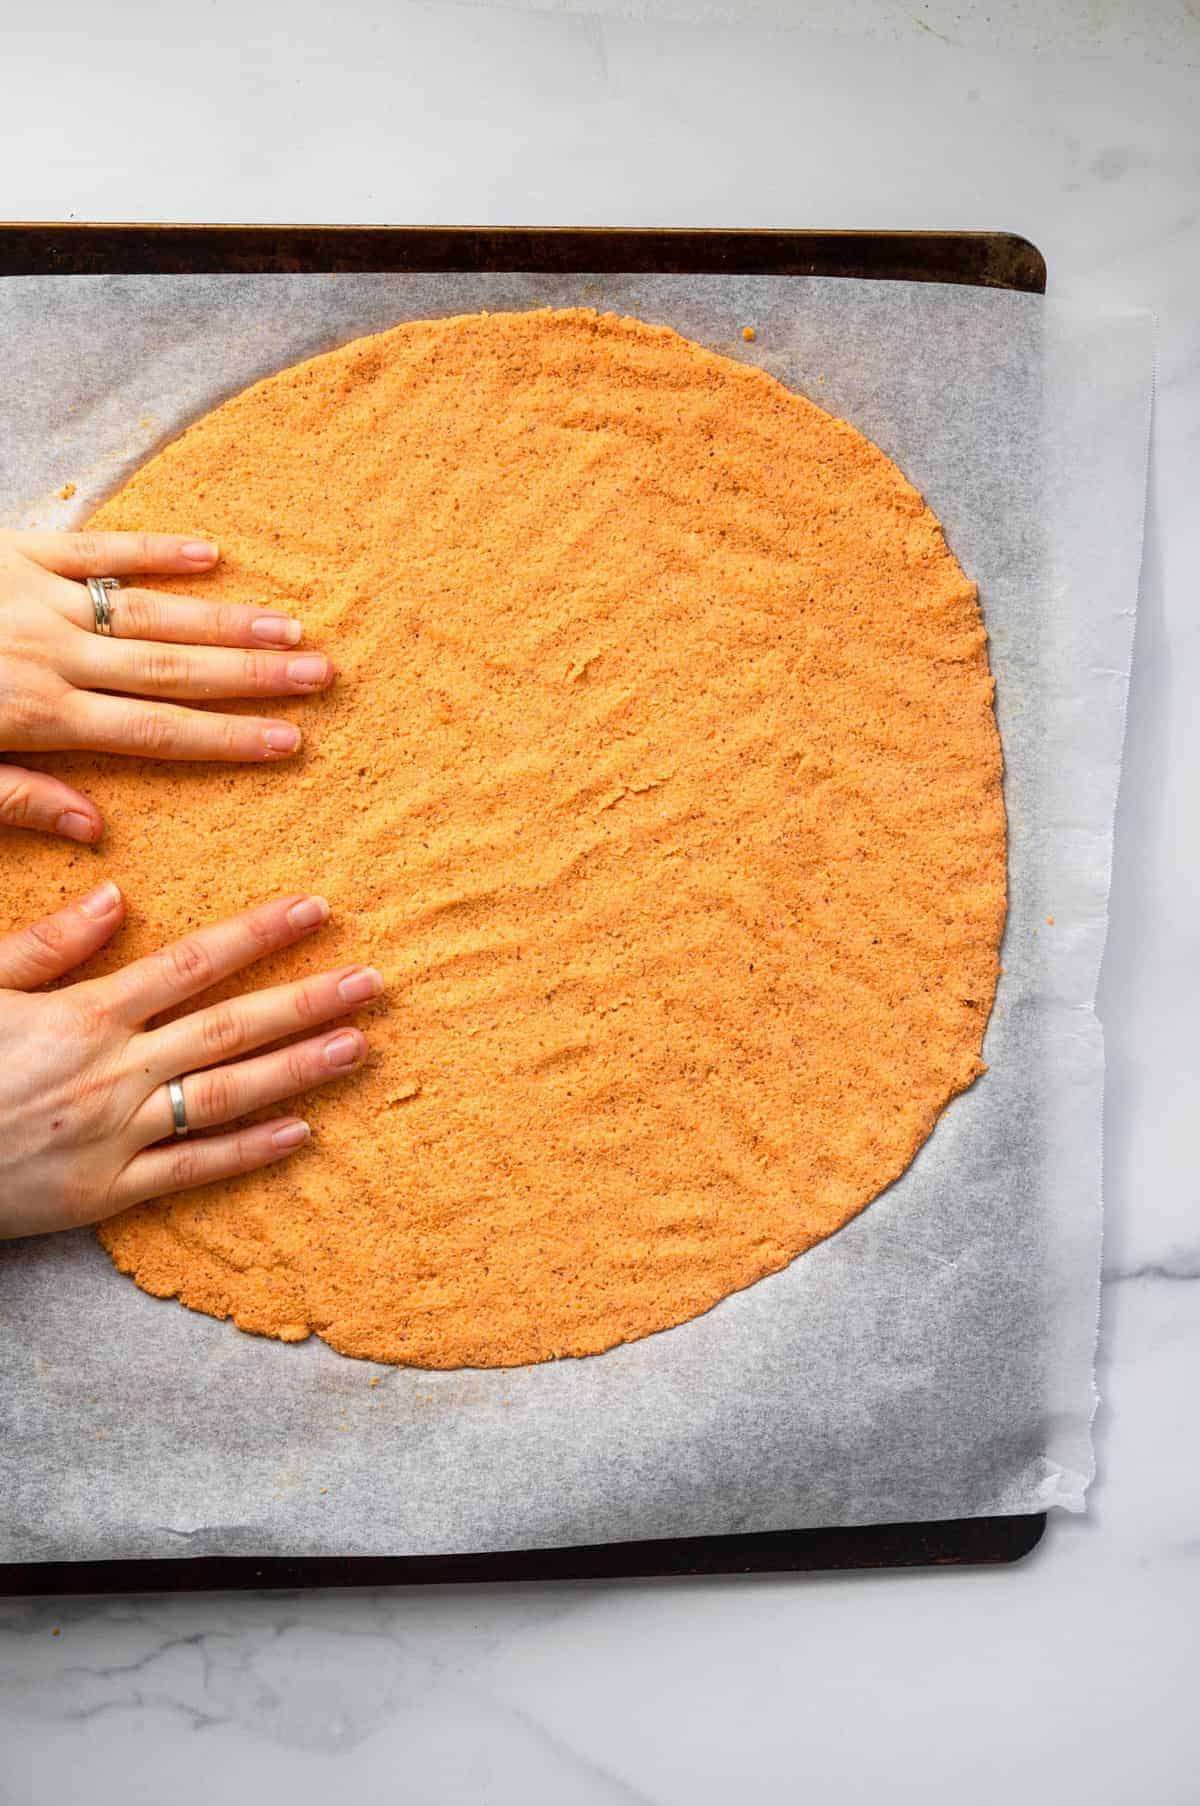 Sweet Potato Crust being pressed on to a baking sheet